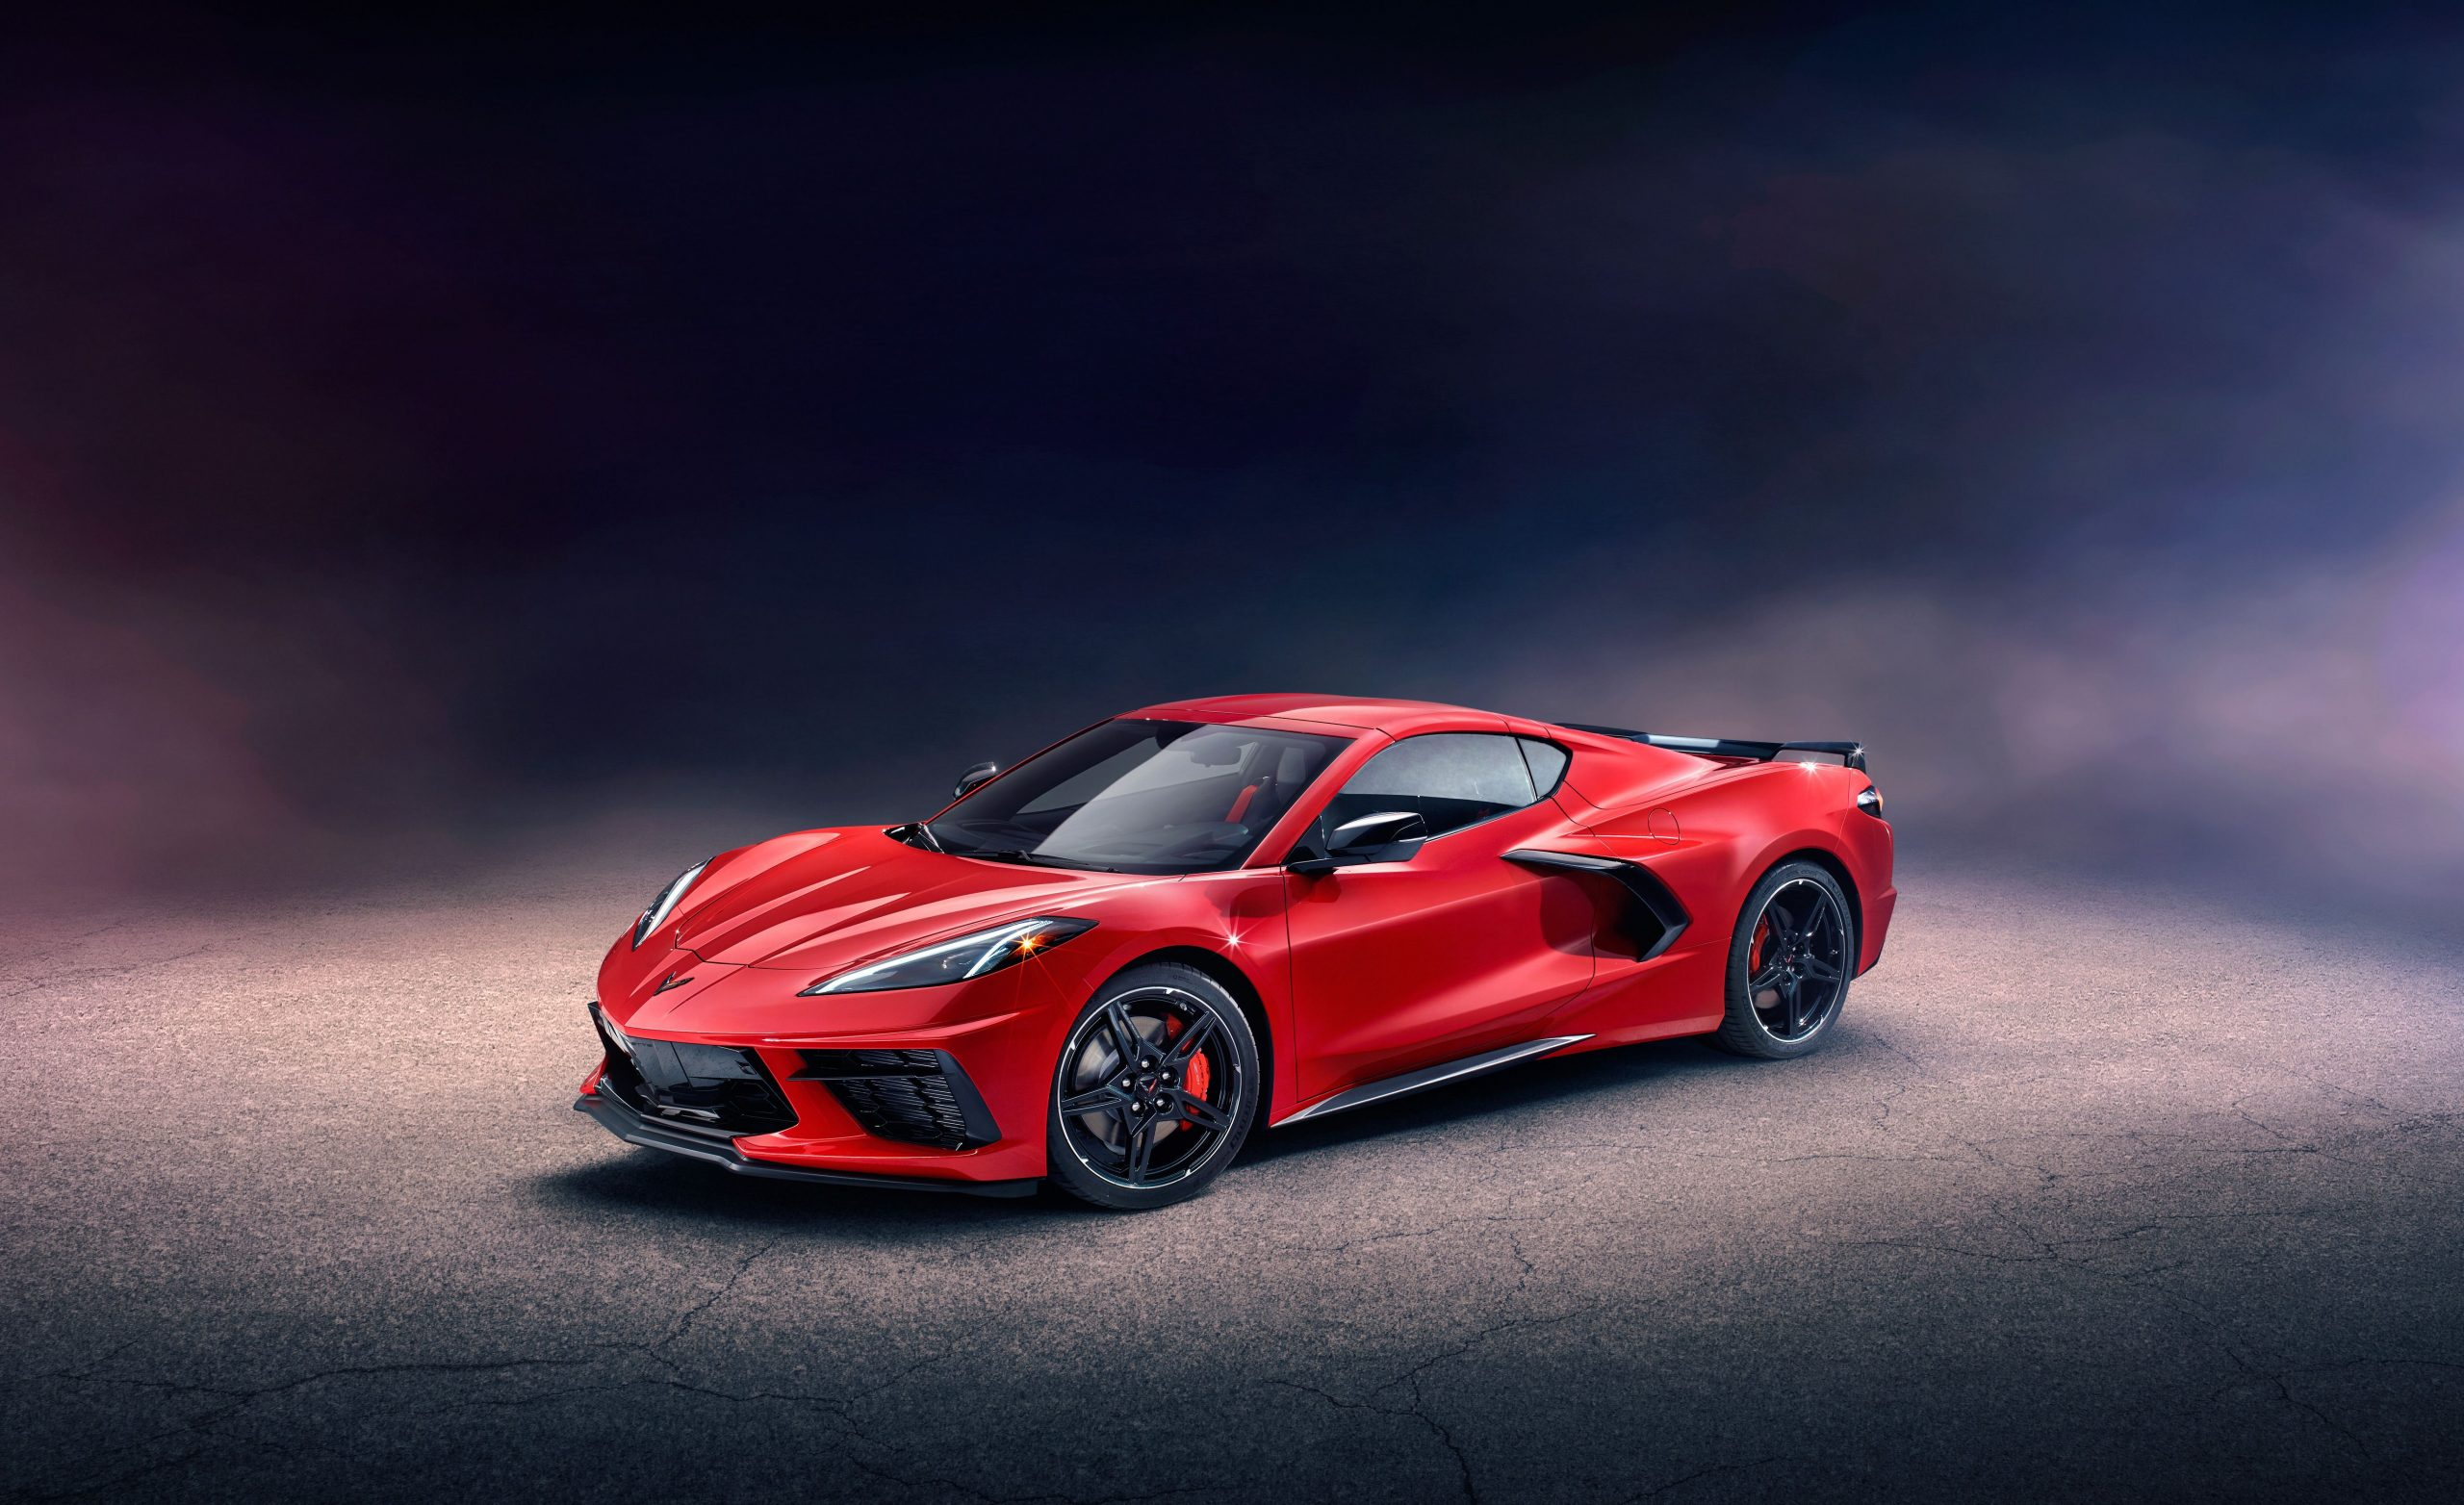 The Mid-Engined 2020 Chevy Corvette Is Here 2021 Chevy Corvette Grand Sport Interior, Owners Manual, Review